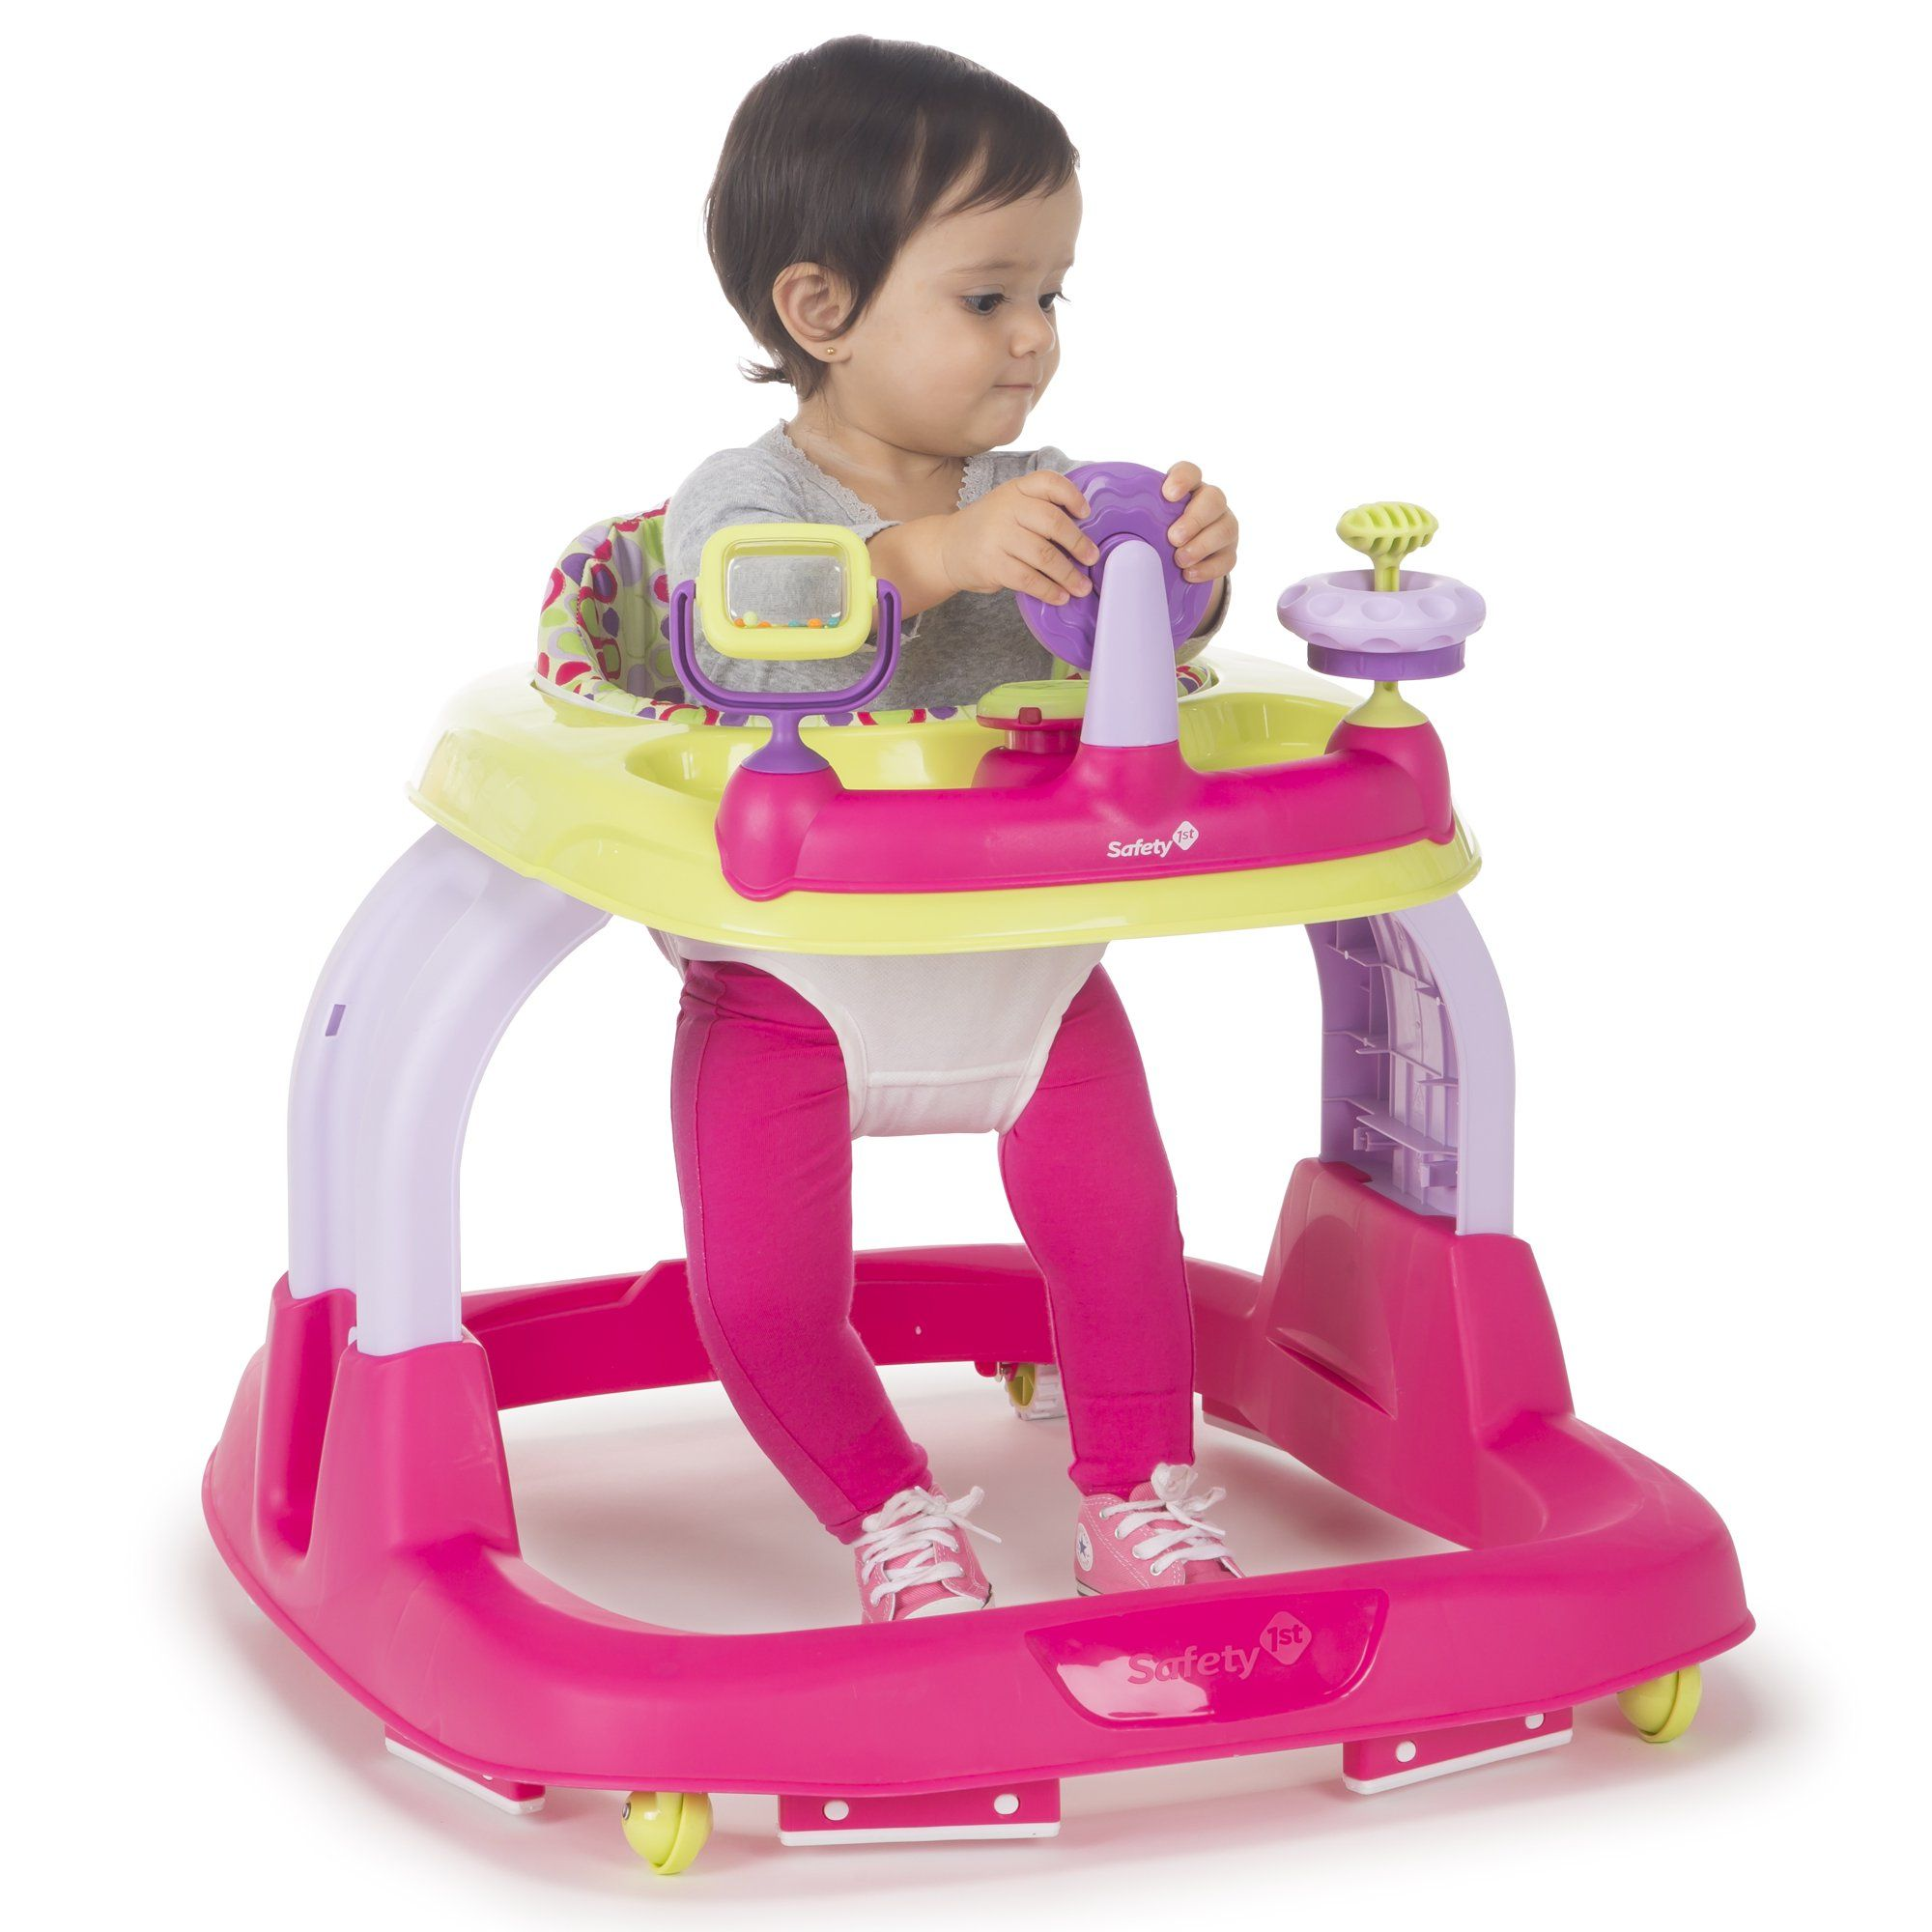 Safety 1st Ready, Set, Walk! Developmental Walker, Dottie